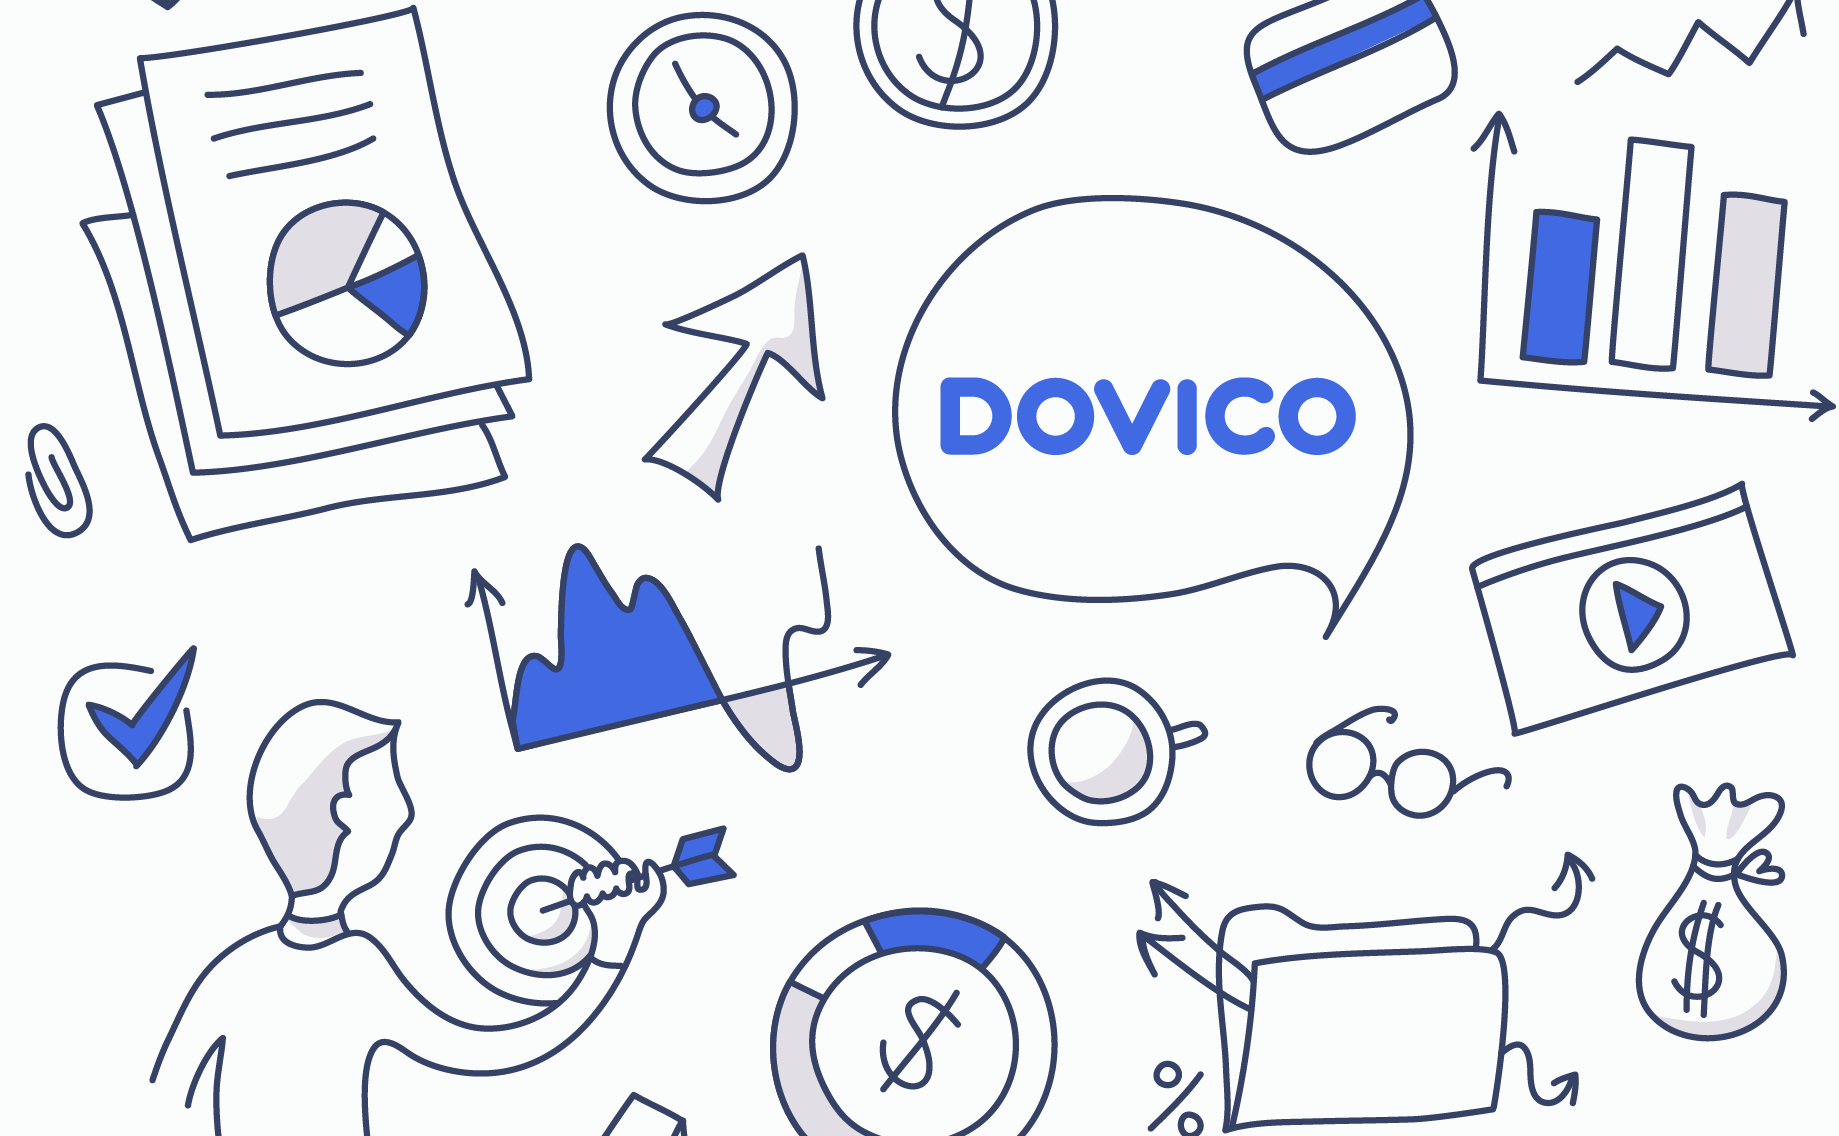 dovico-reporting-1-689867347-1520868075681.png